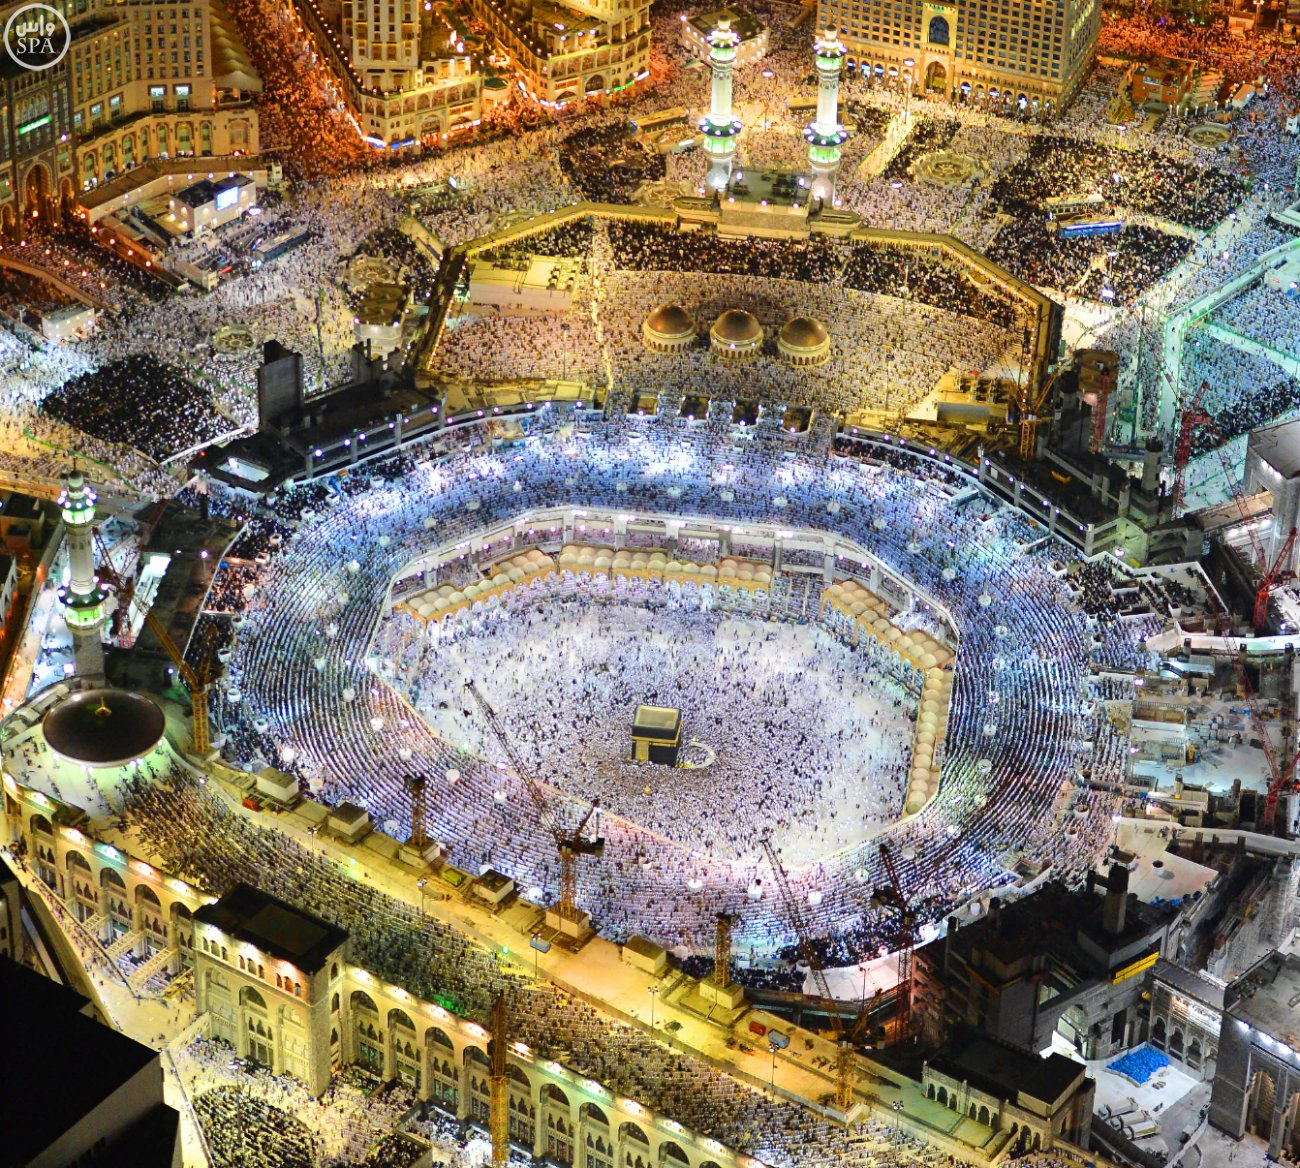 Muslim Wallpaper Hd 10 Amazing Aerial Photos From Makkah Taken During The 27th